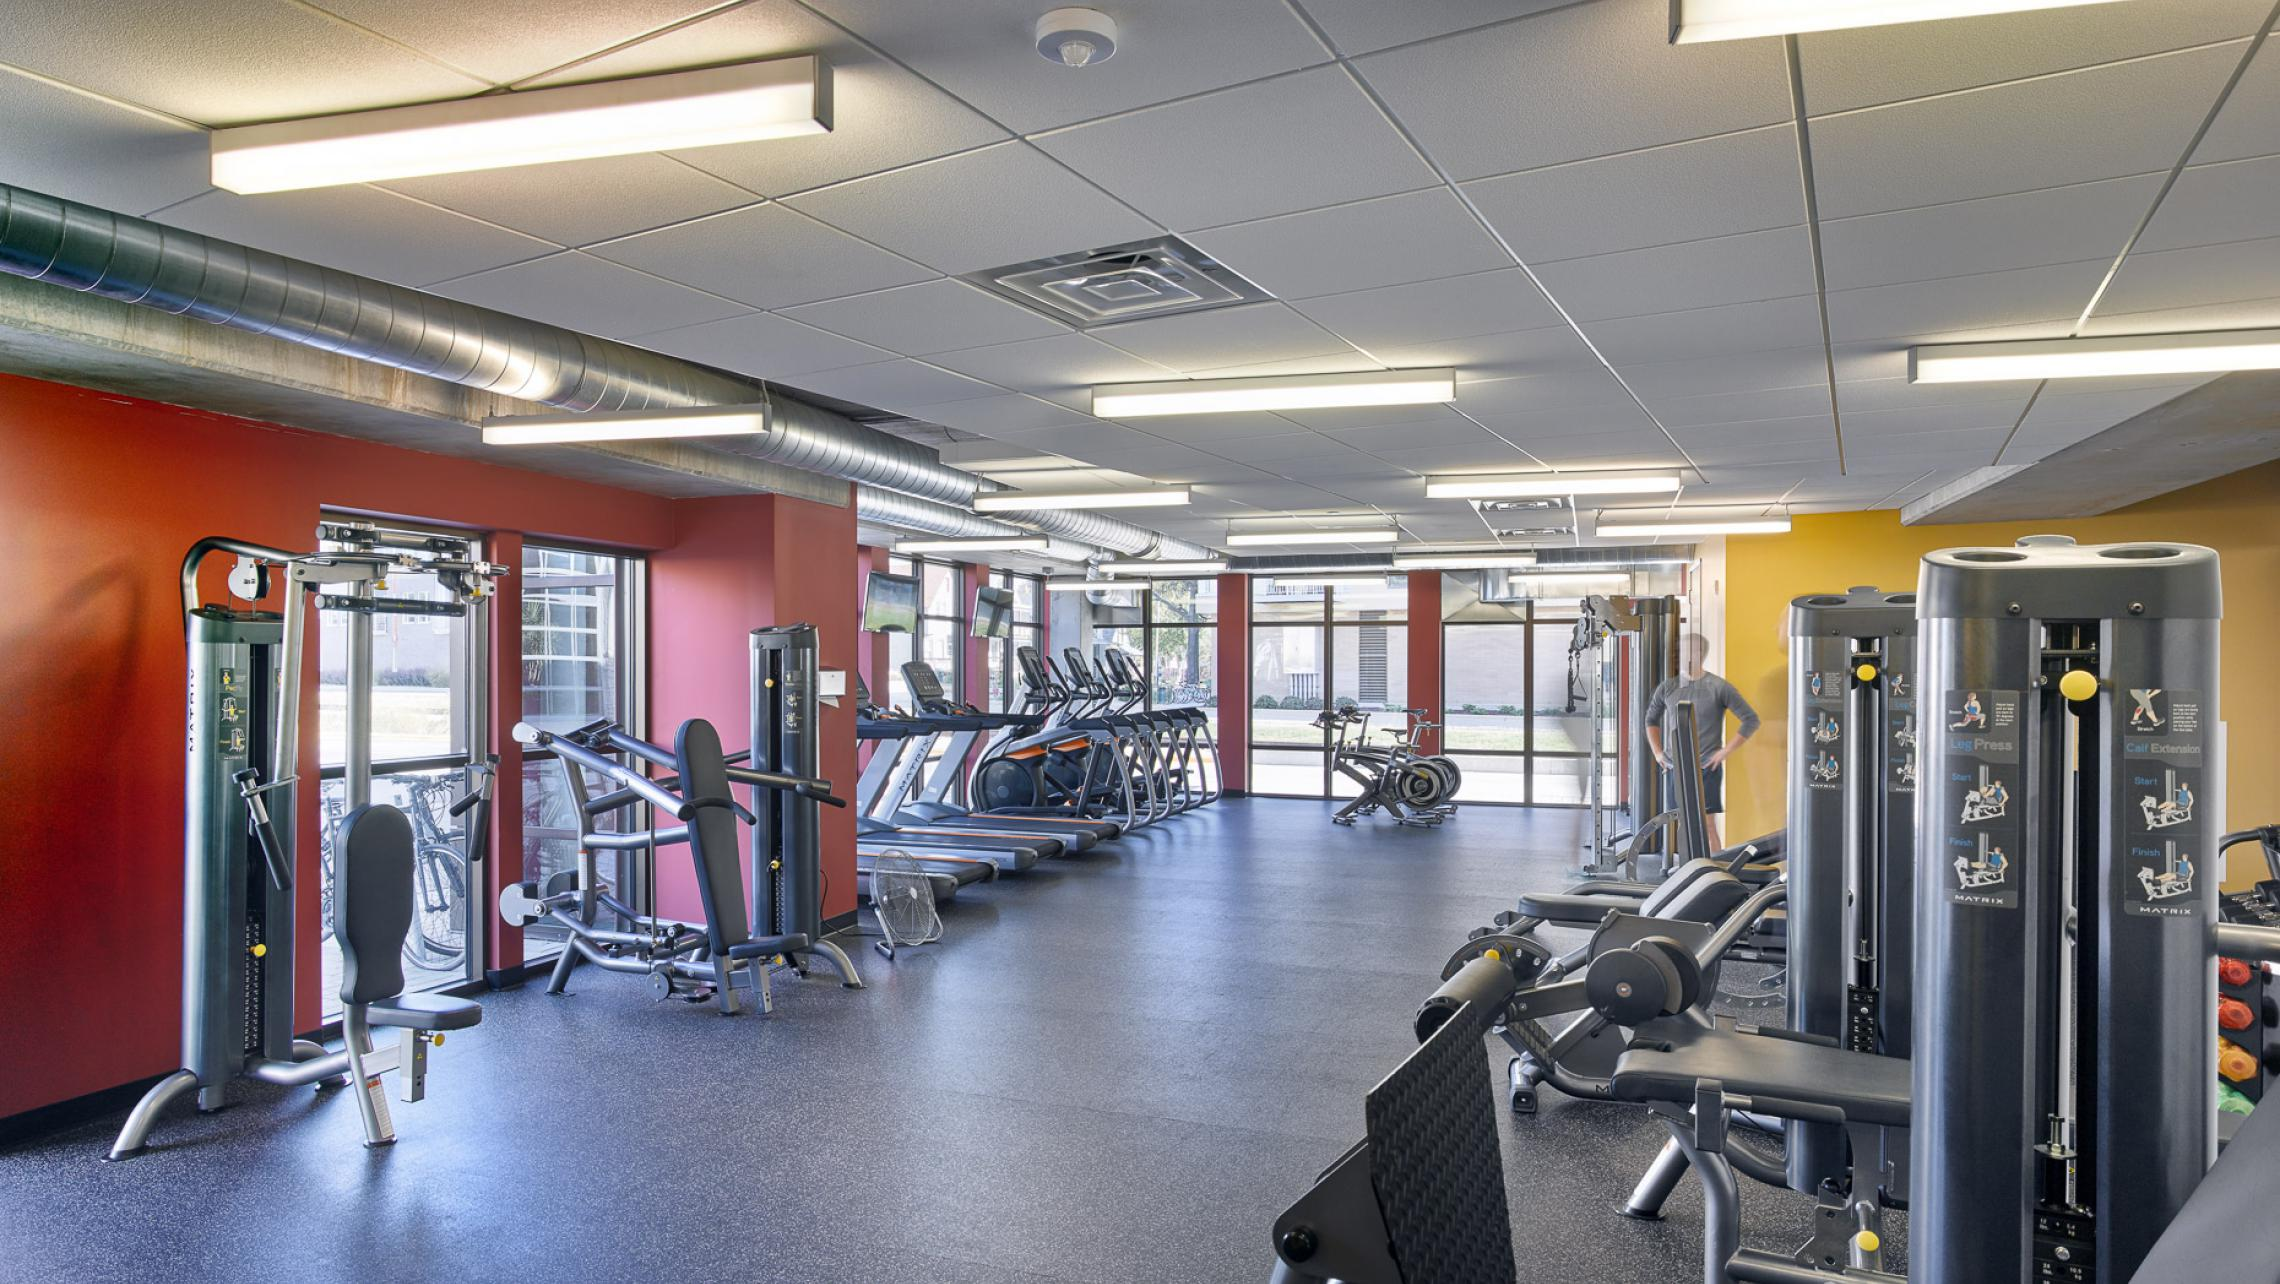 ULI Seven27 Apartments - Fitness Center with Professional Equipment